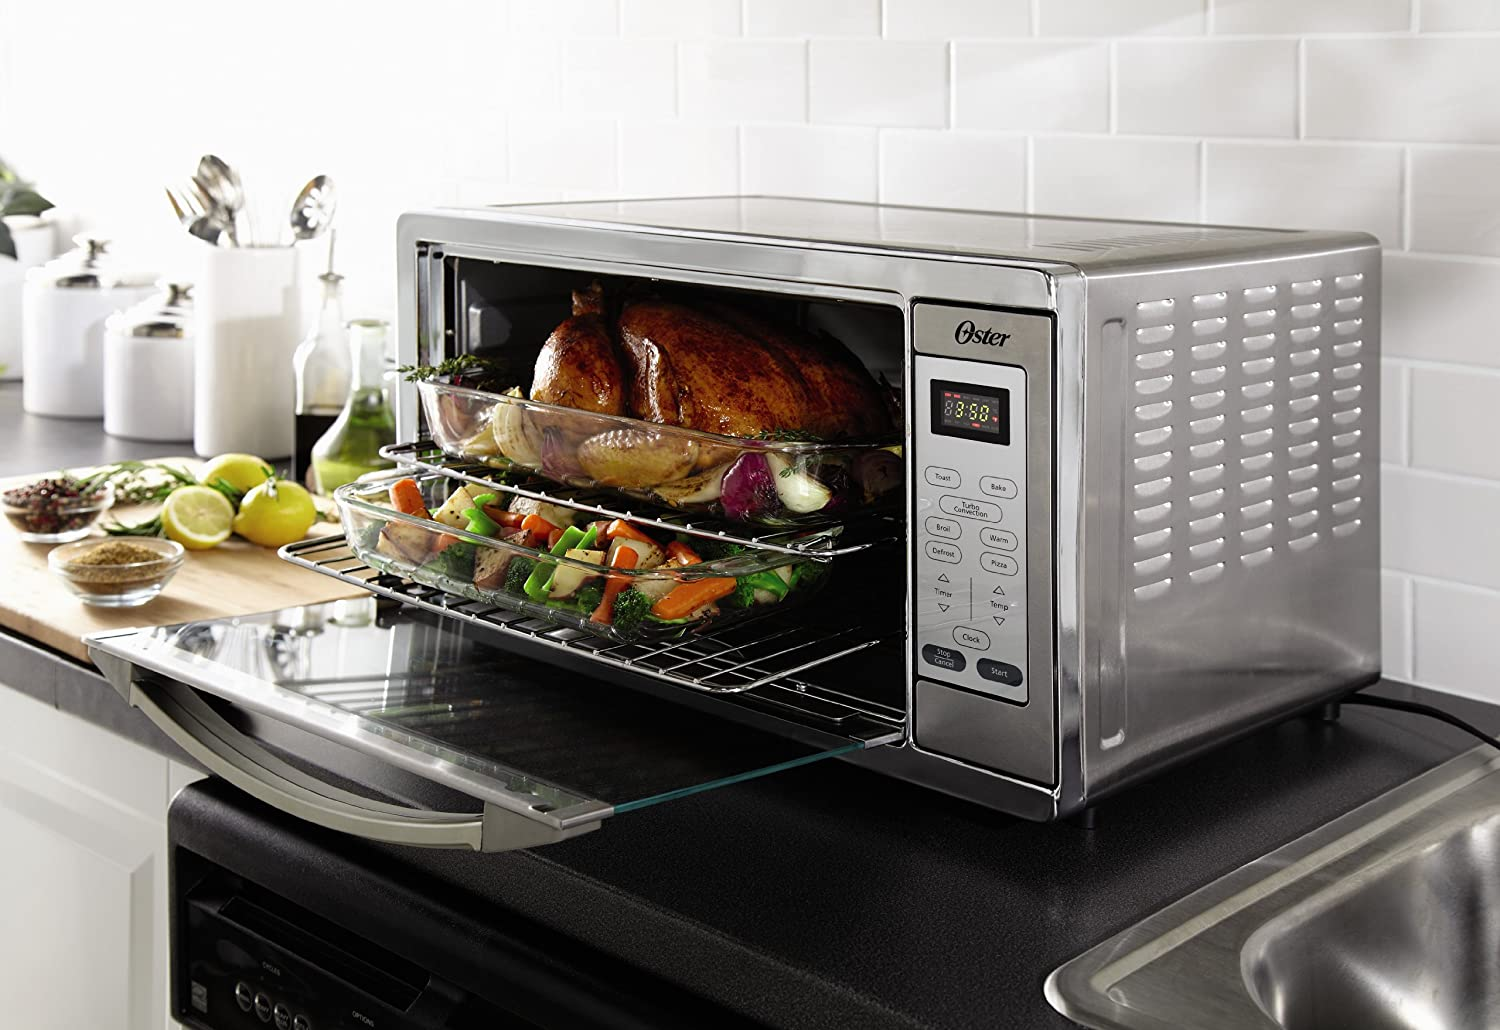 oven best wirecutter toasterovens reviews times york by a new company the toaster largest